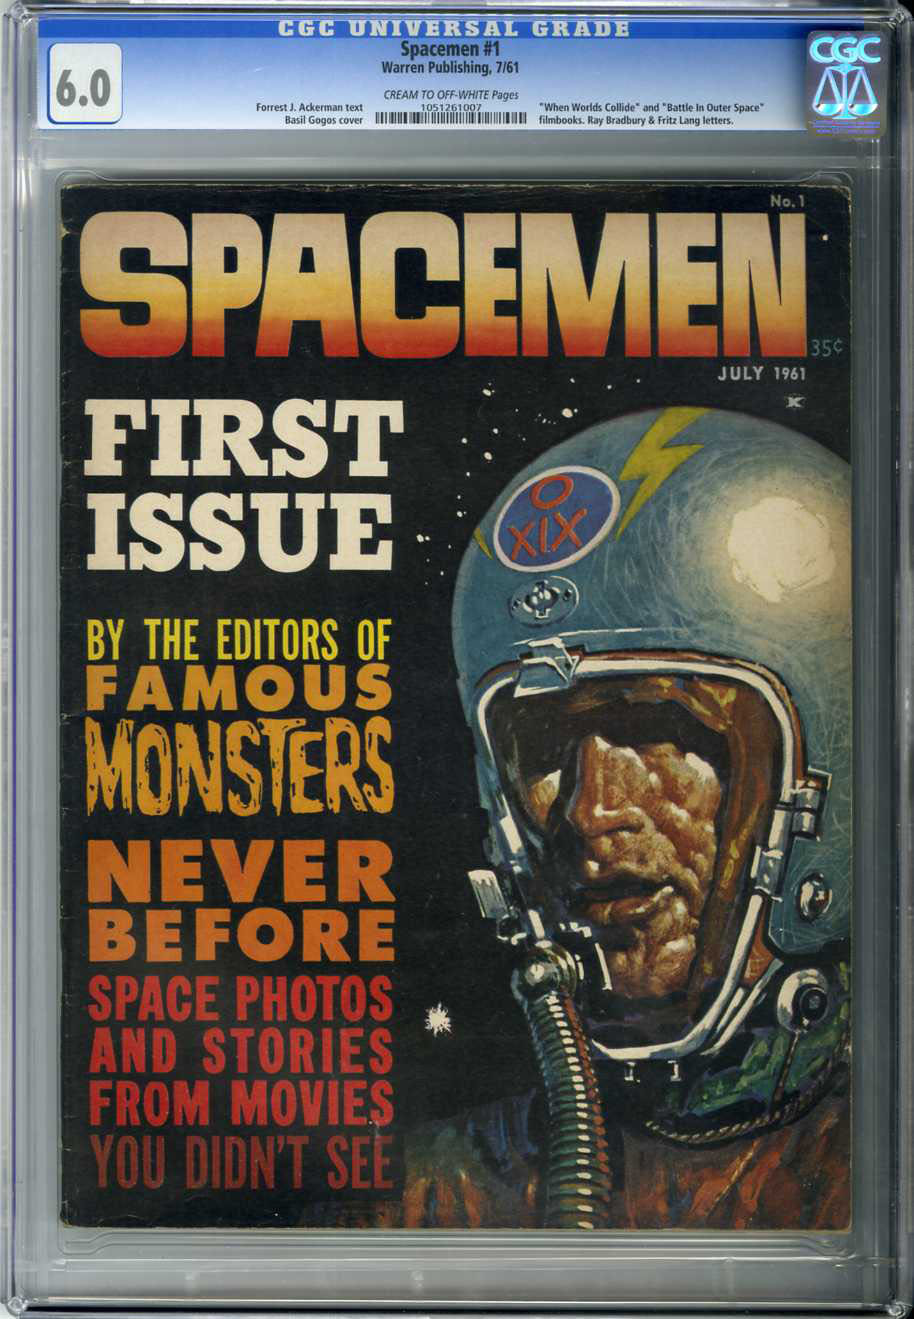 SPACEMAN #1 (1961) CGC FN 6.0 COW Pages / BASIL GOGOS COVER/ RAY BRADBURY LETTER